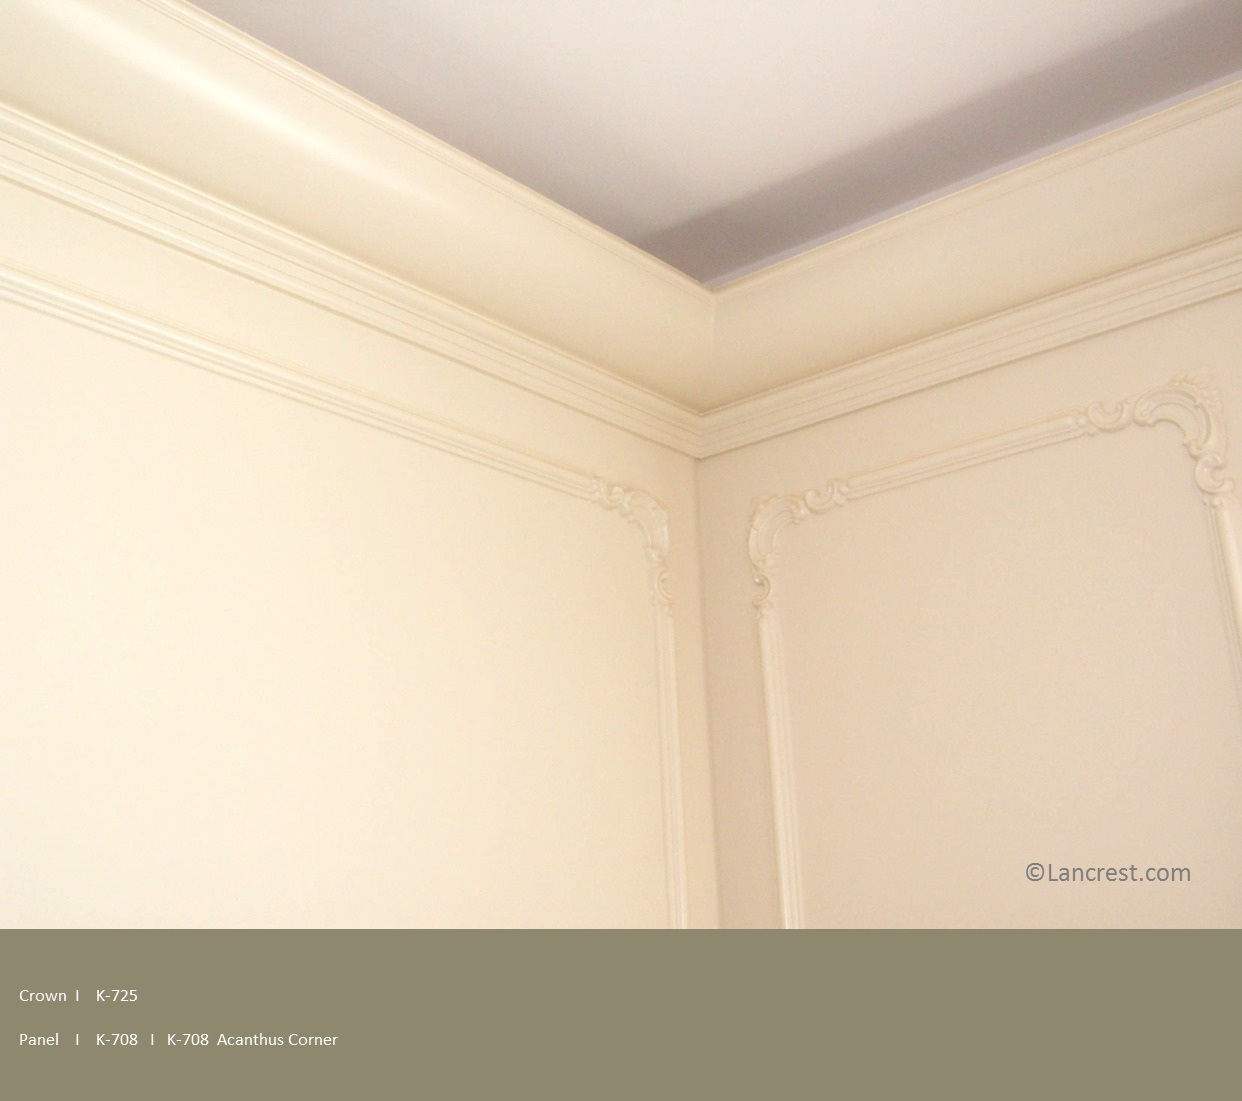 Crown Molding Designs And Ideas, Panel Molding Ideas